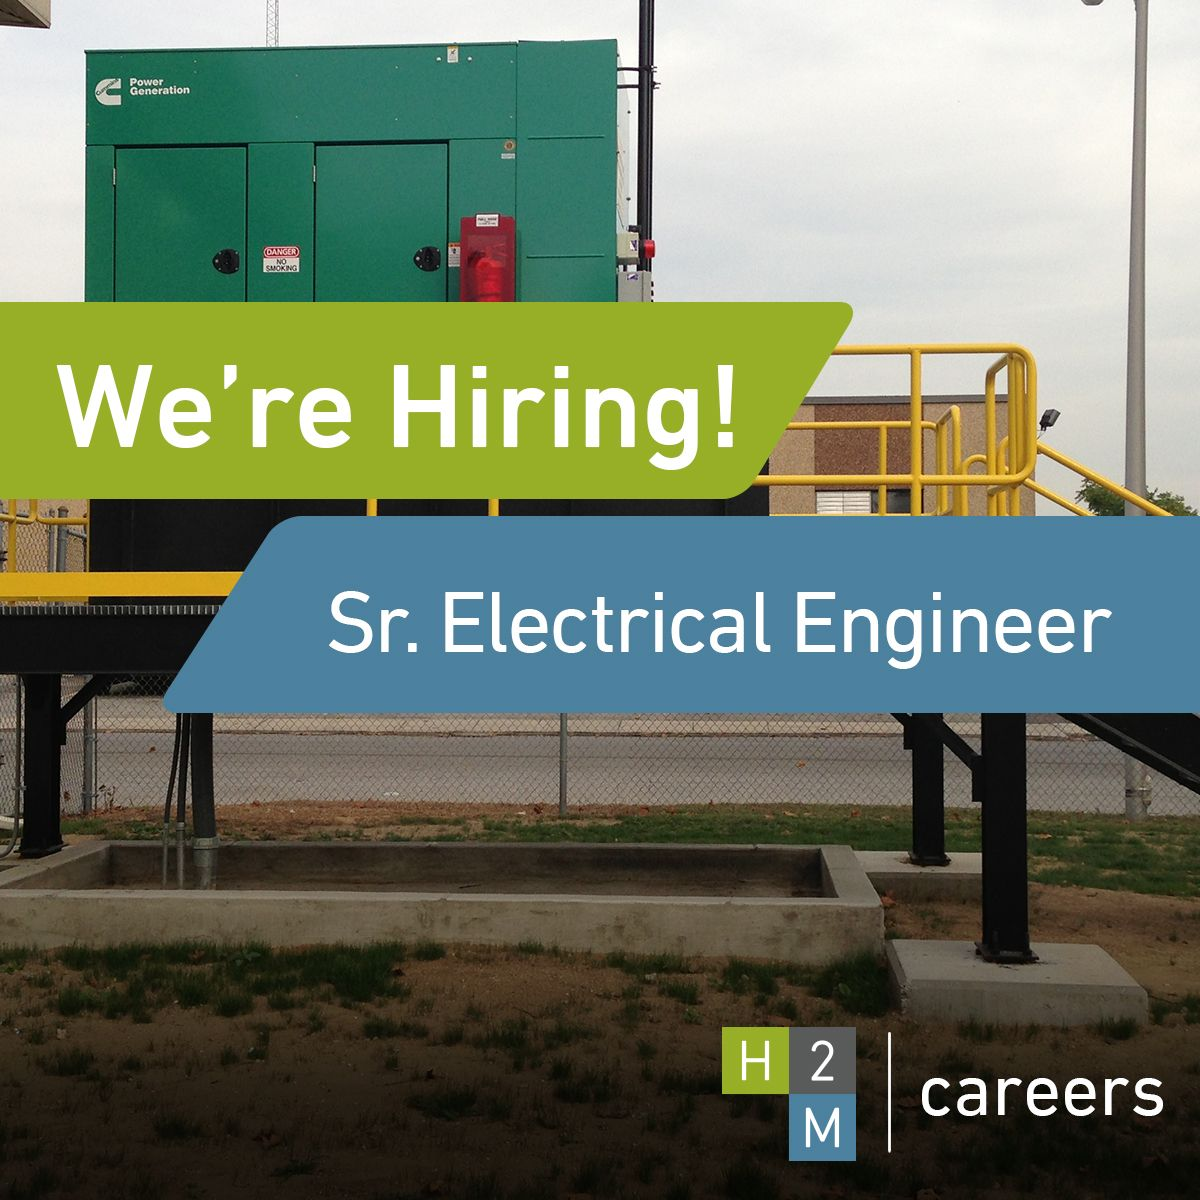 We're Hiring a Senior Electrical Engineer with 6+ years of